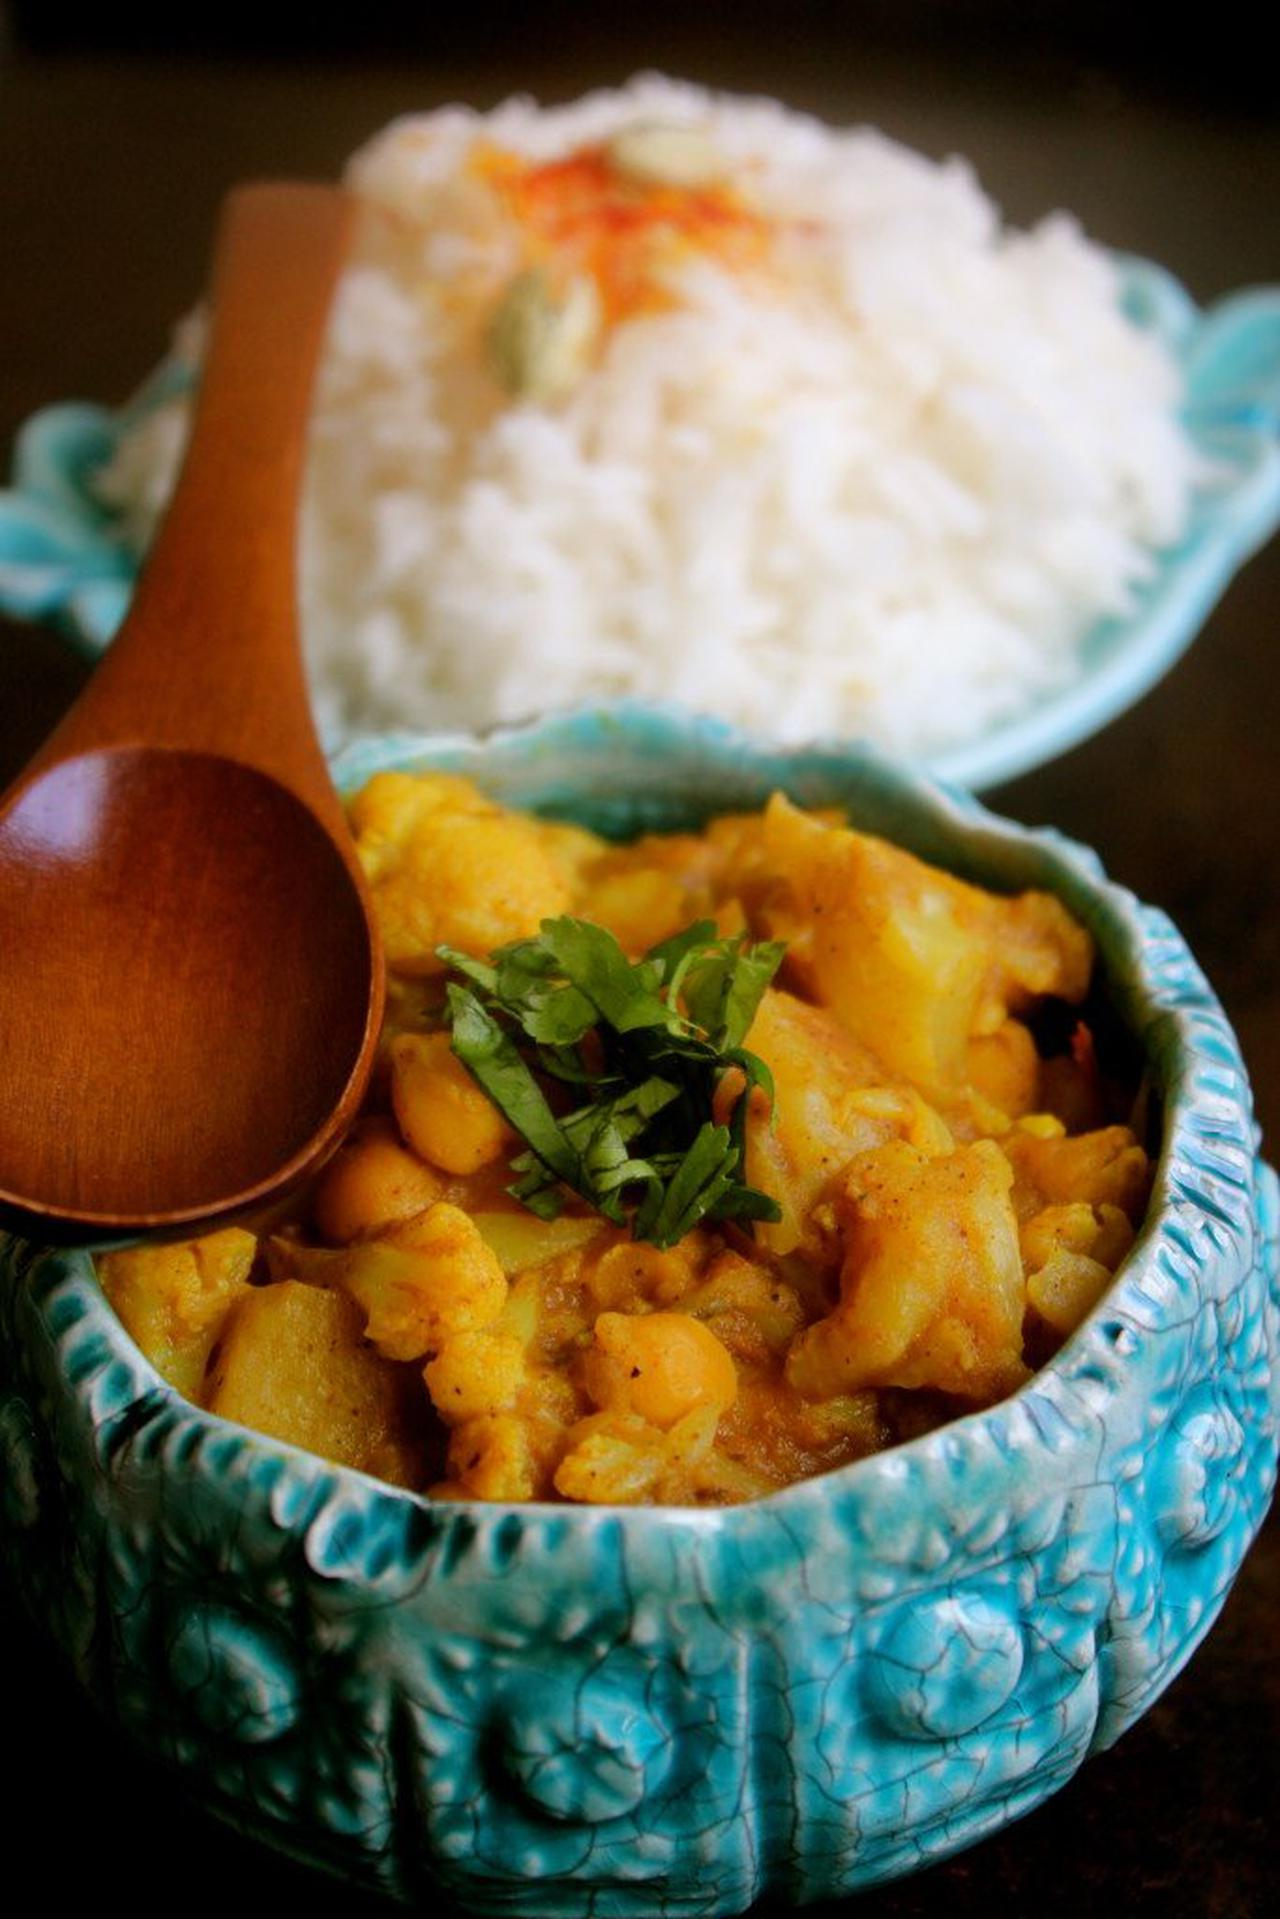 Main image of Cauliflower Chickpea Coconut Curry